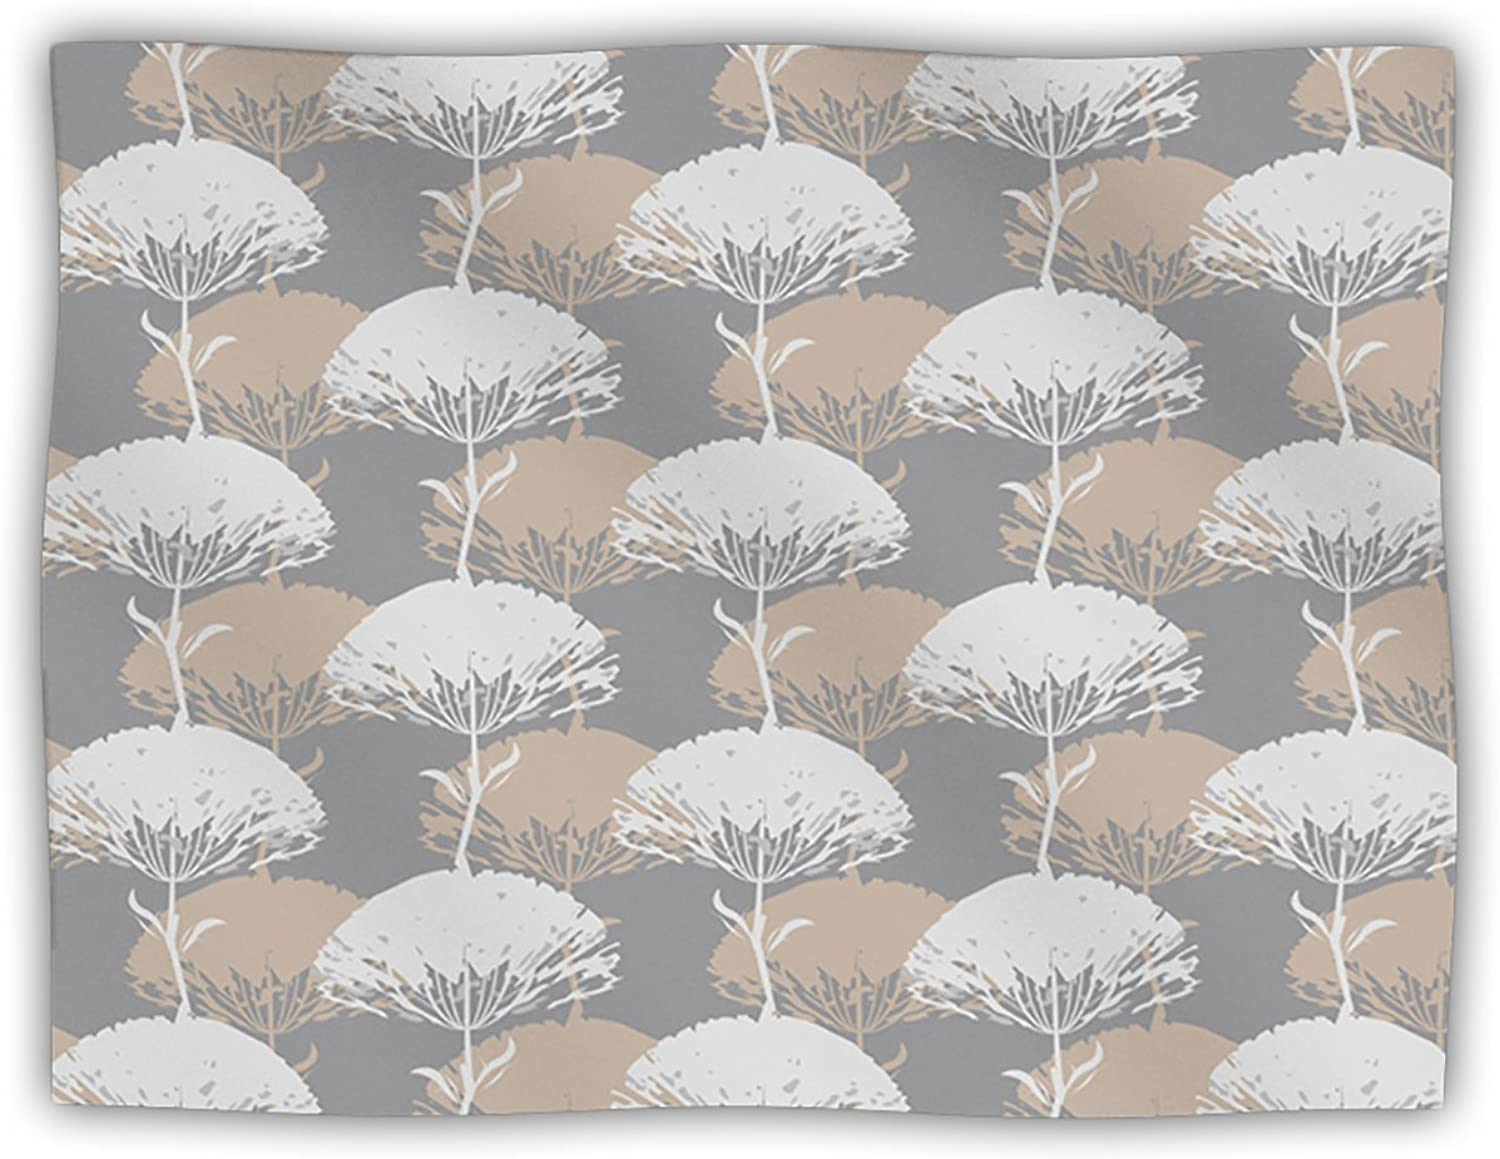 Kess InHouse Julia Grifol 'Charming Tree' Dog Blanket, 40 by 30Inch